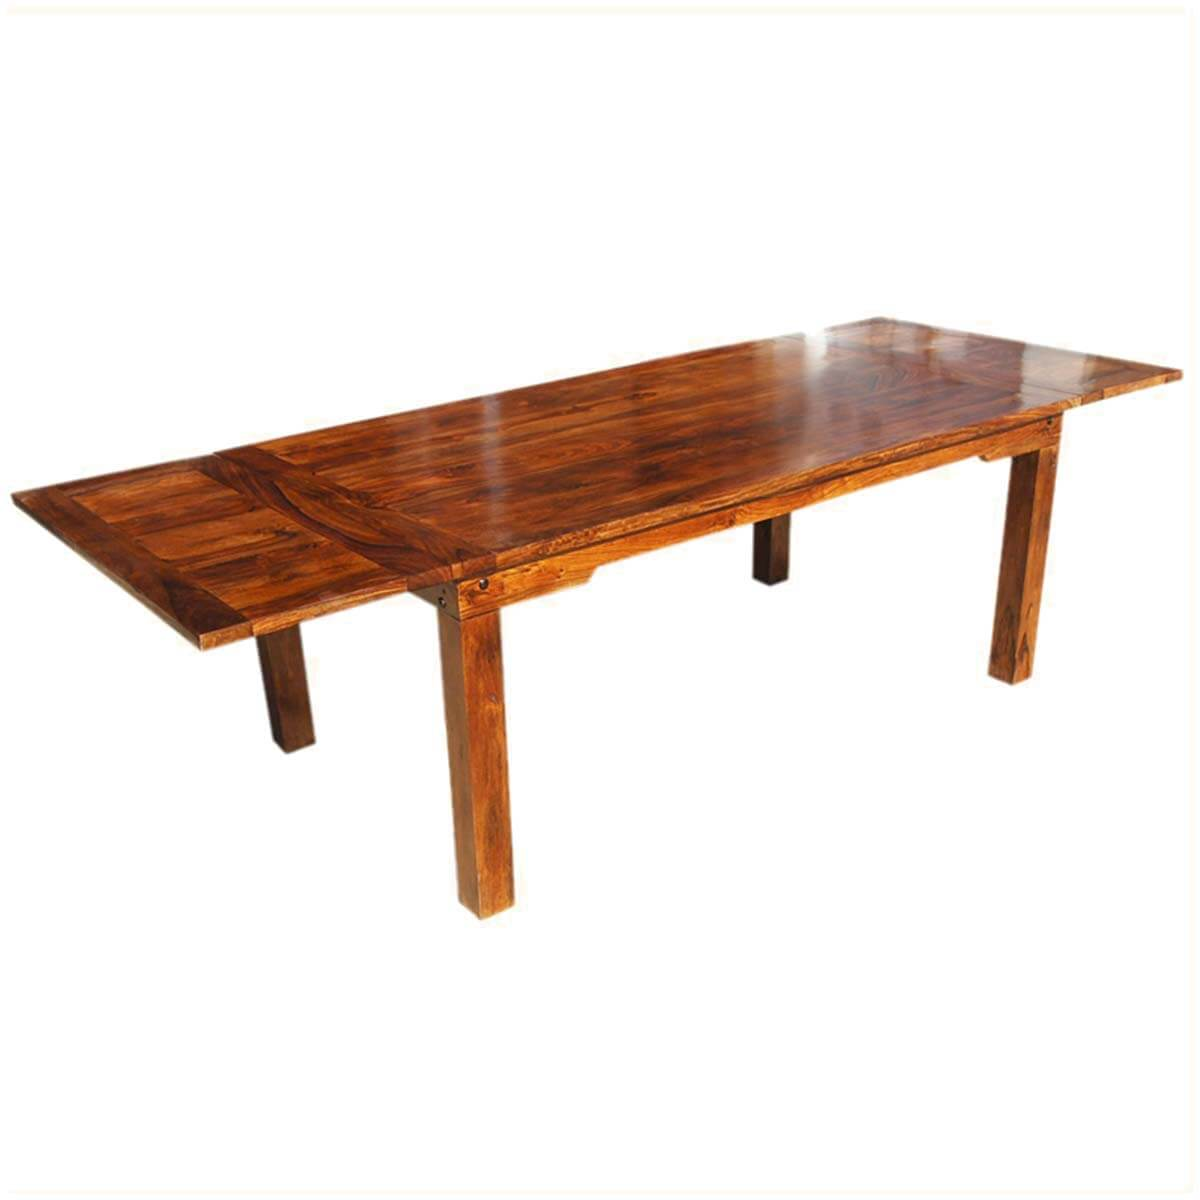 Solid Wood Dining Table By H F: Solid Wood Transitional Rustic Dining Table W Extensions